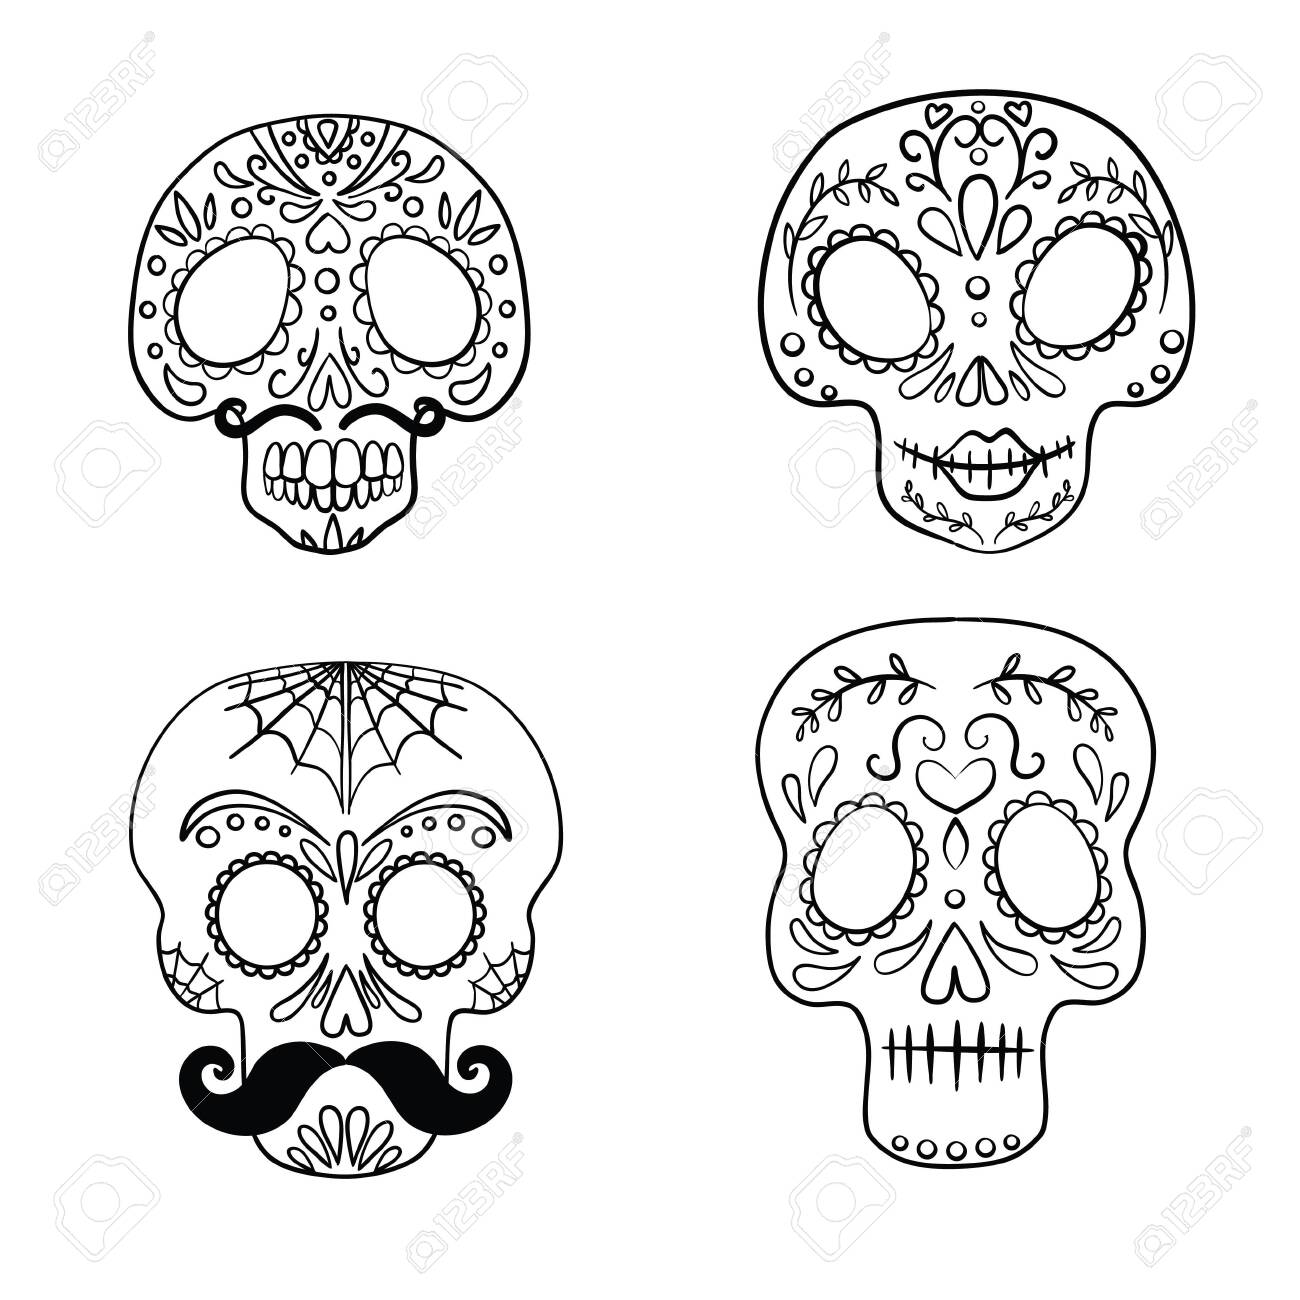 Sugar Skull Coloring Pages - GetColoringPages.com | 1300x1300